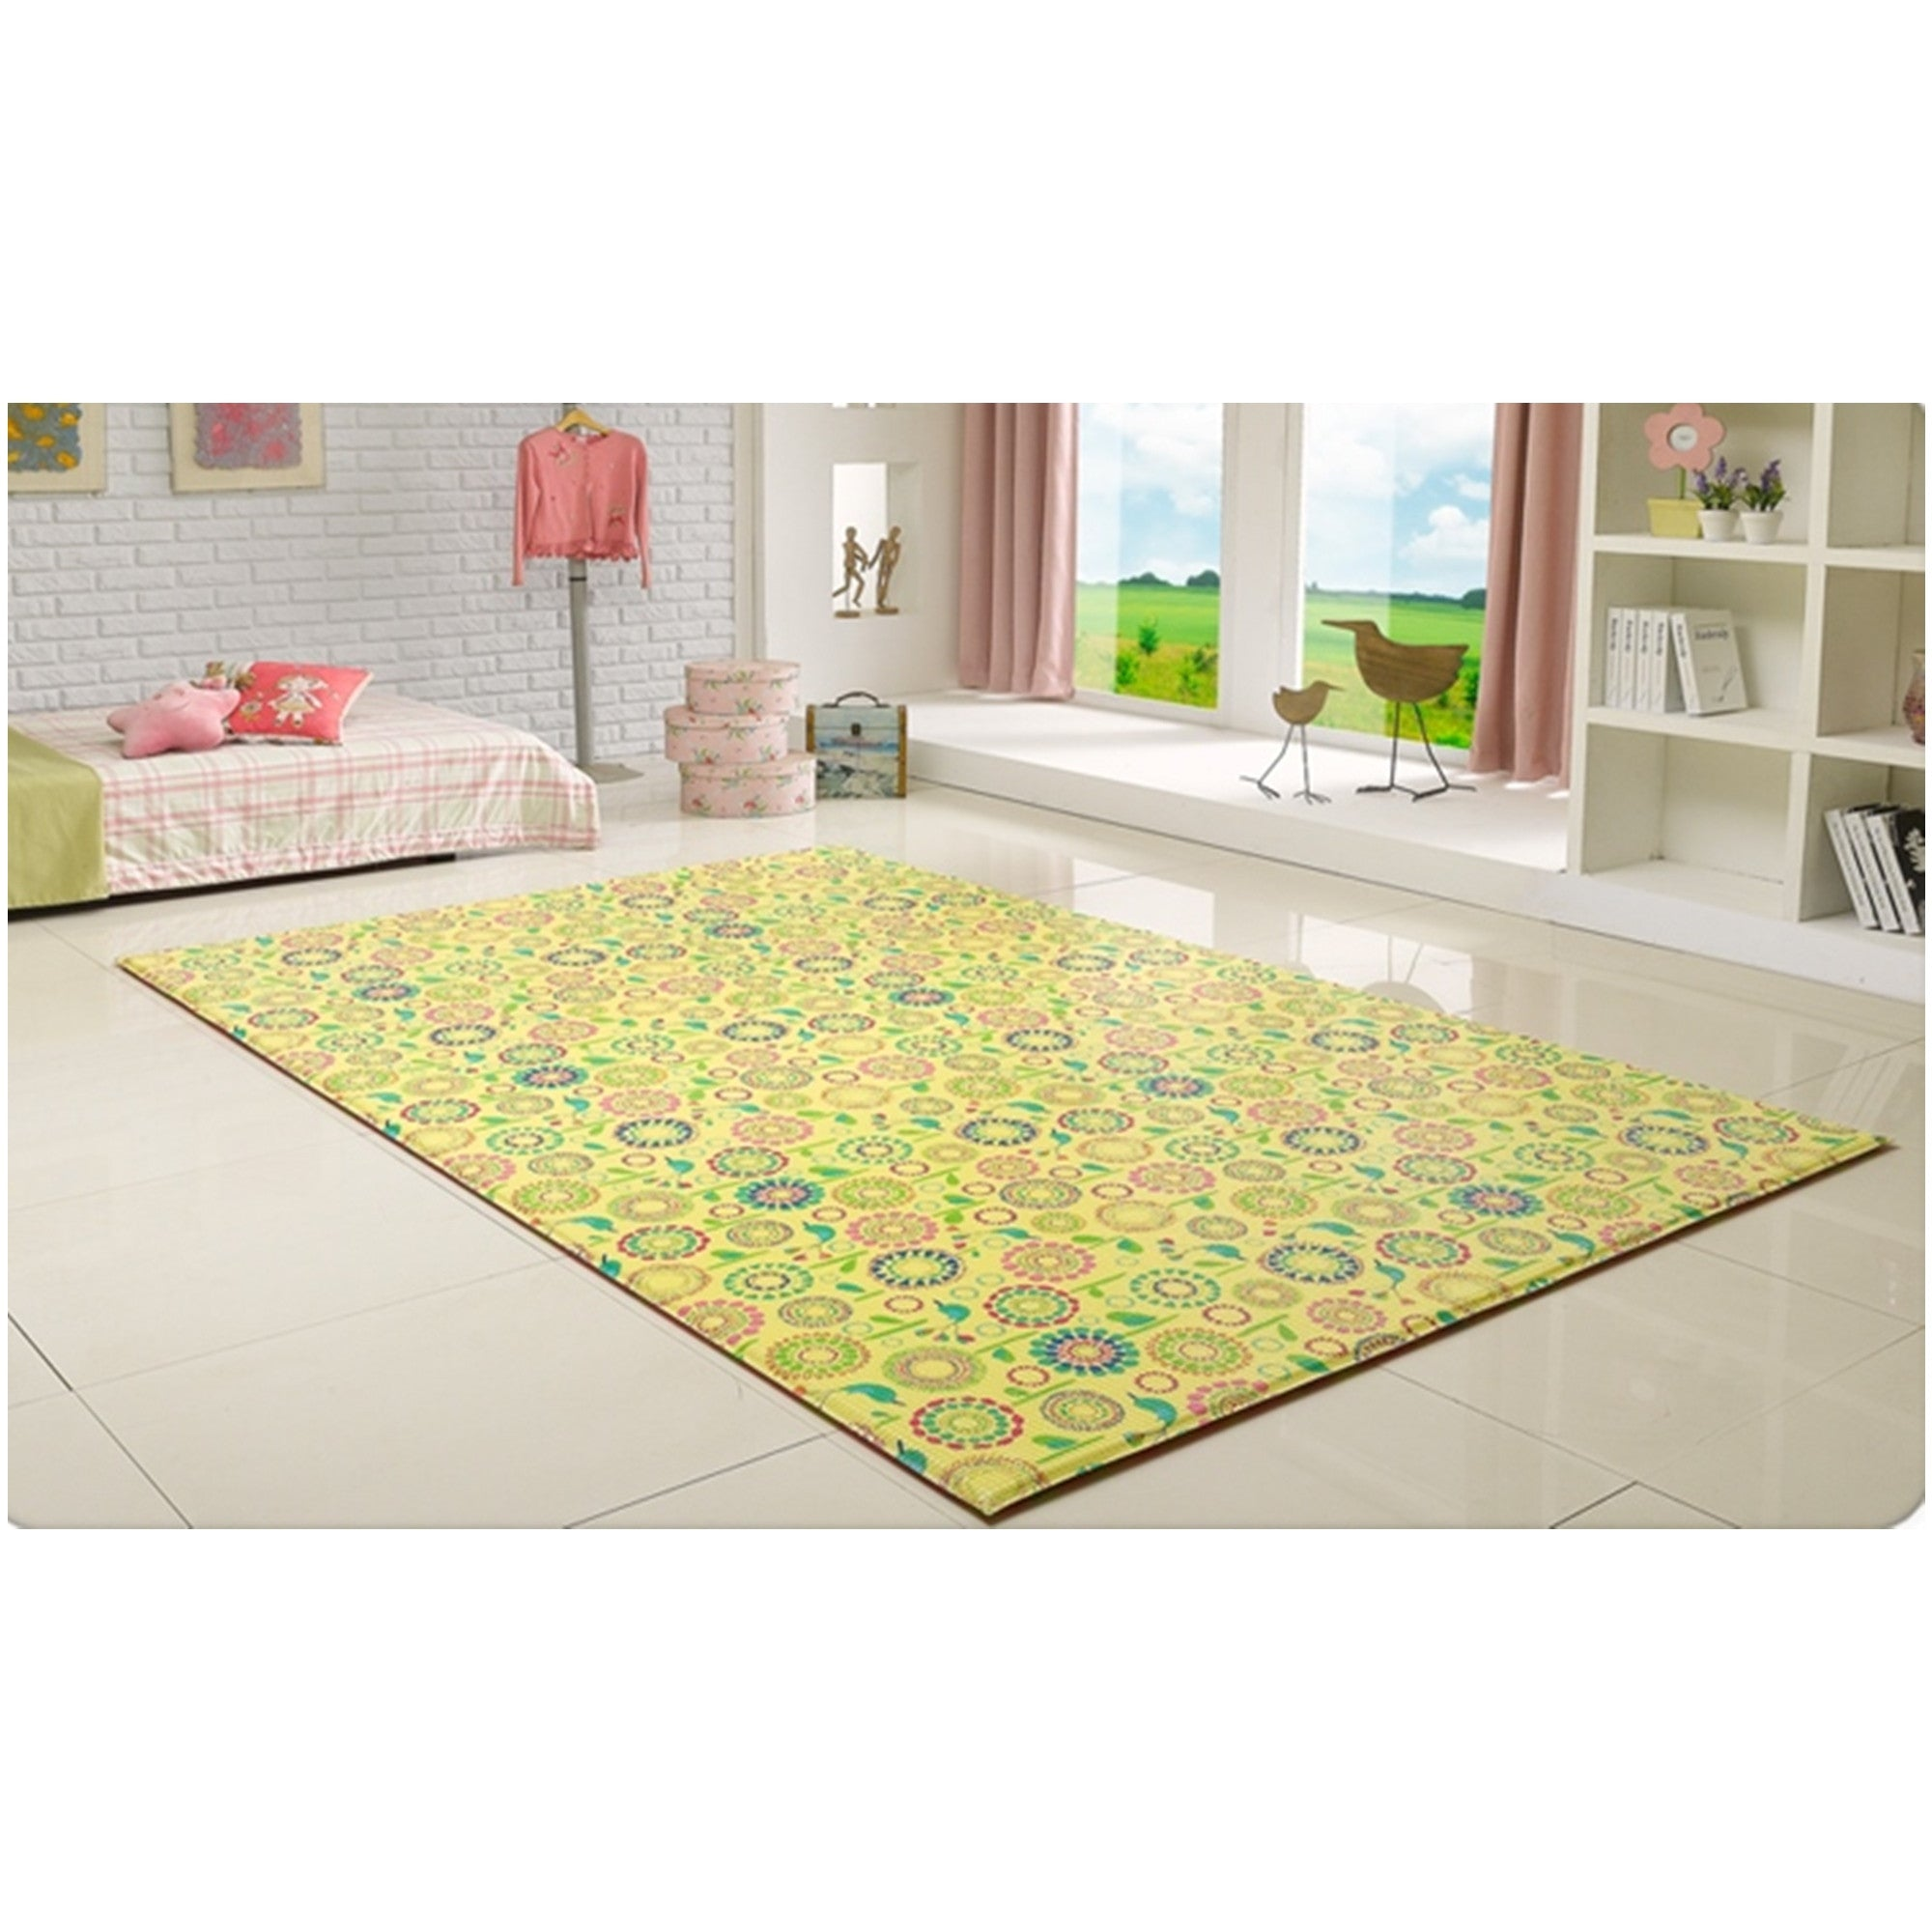 Proby Eco Play mat for Babies and Children – Little Baby Genie